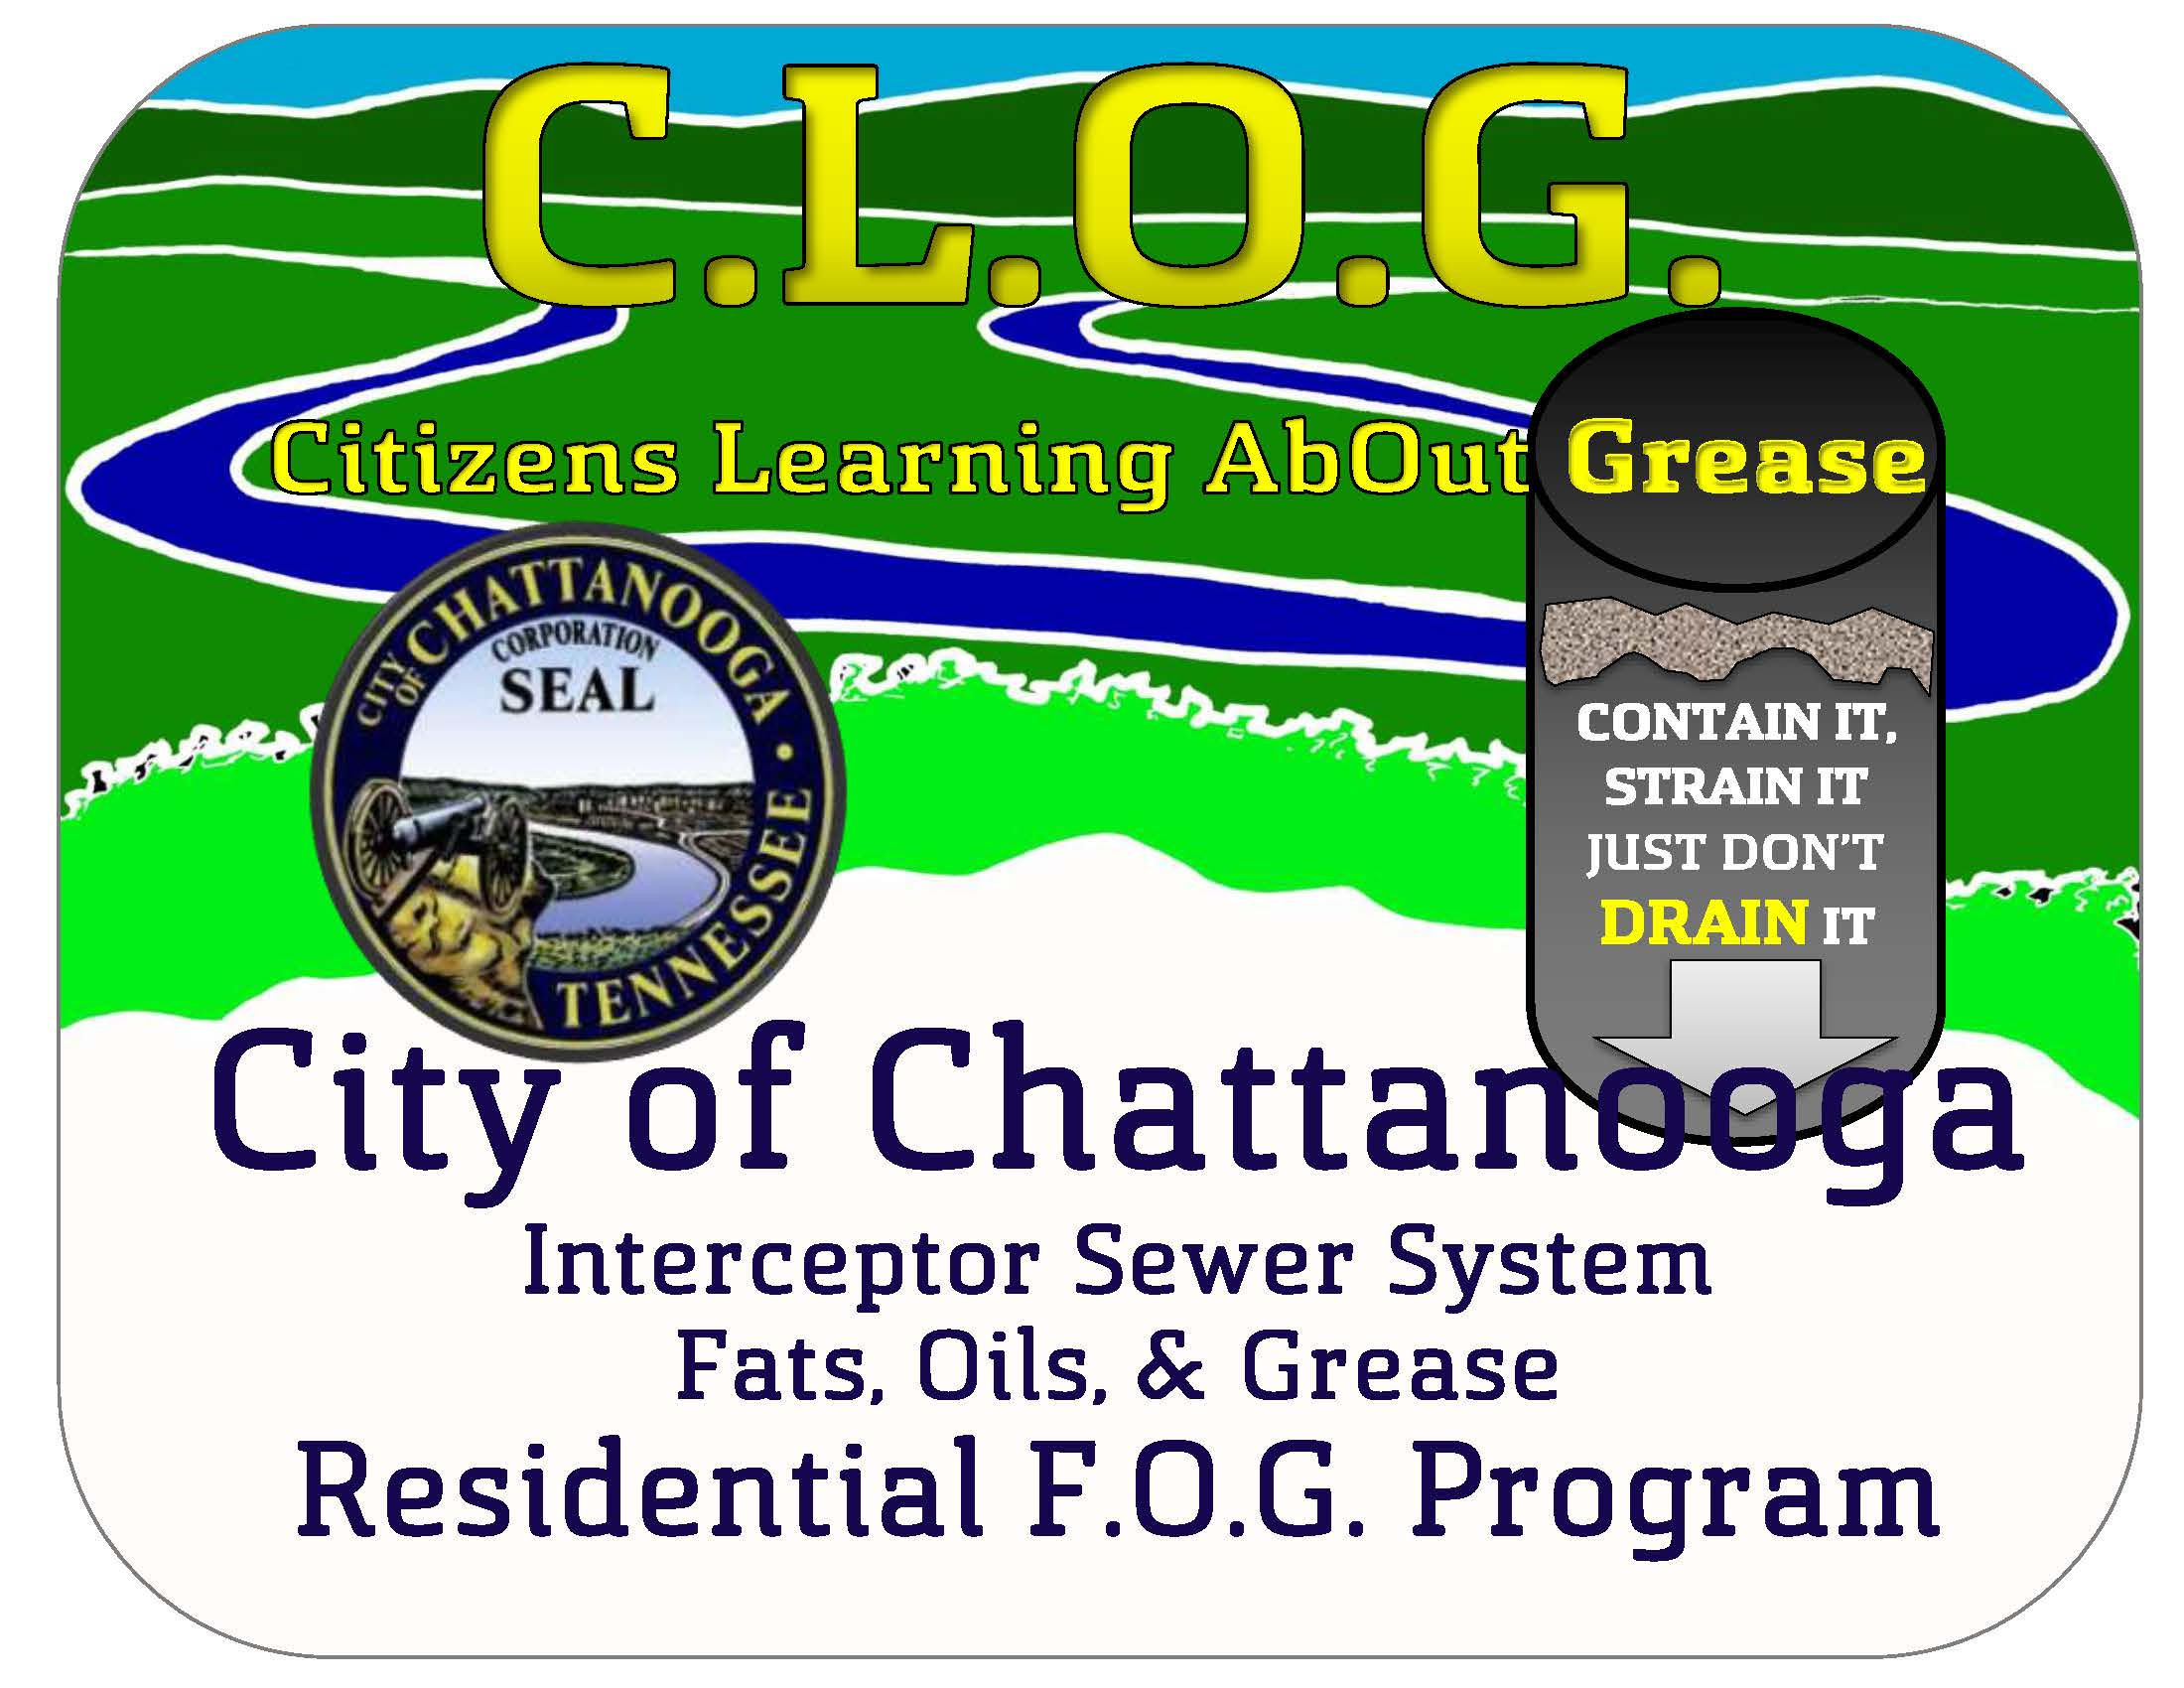 City of Chattanooga Residential F.O.G. Program Graphic Logo Draft 8 18 2015